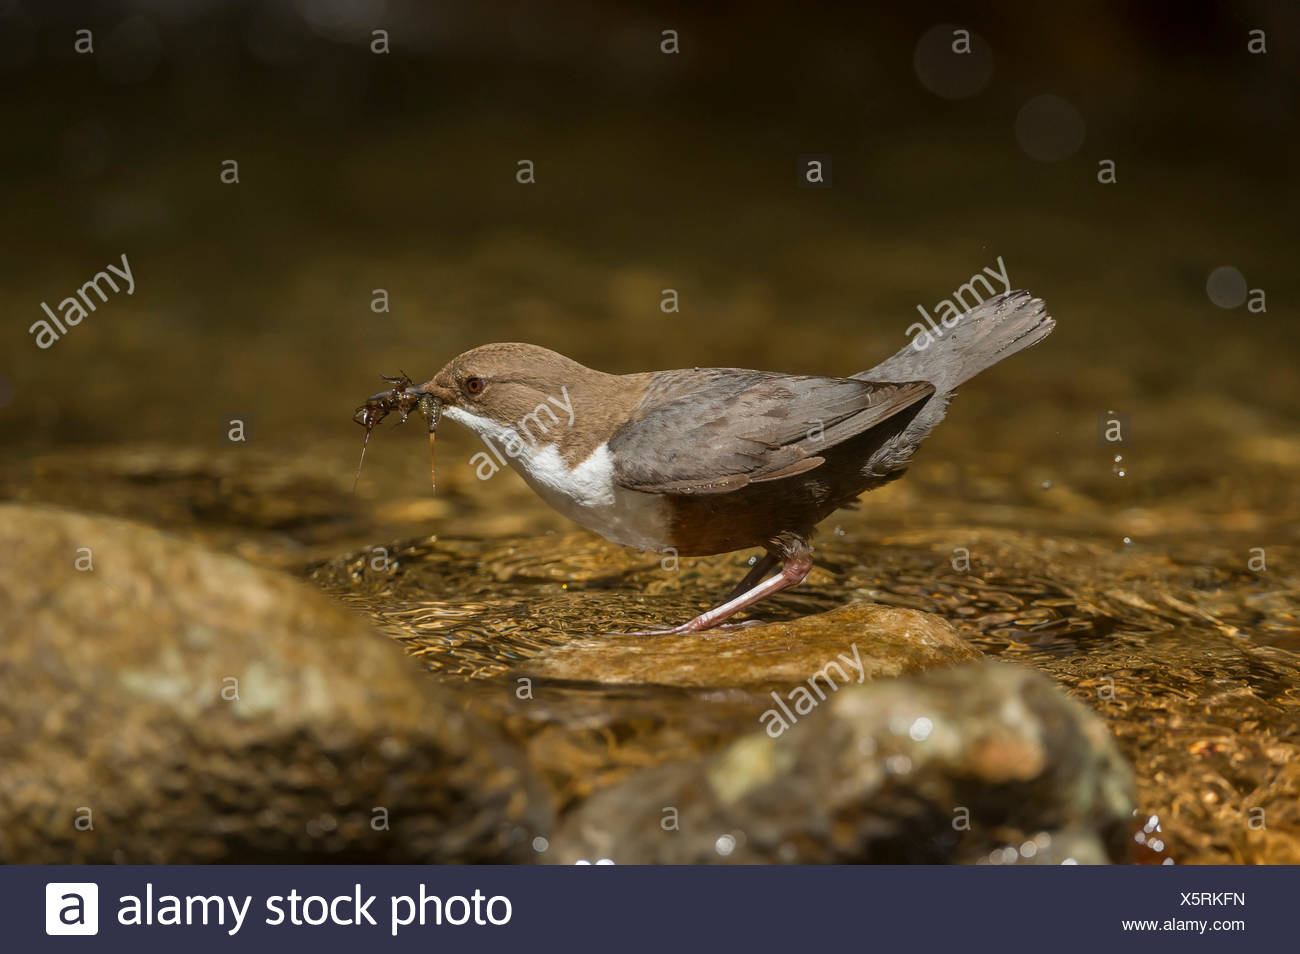 white-throated dipper with cue, Trentino Alto-Adige, Italy - Stock Image